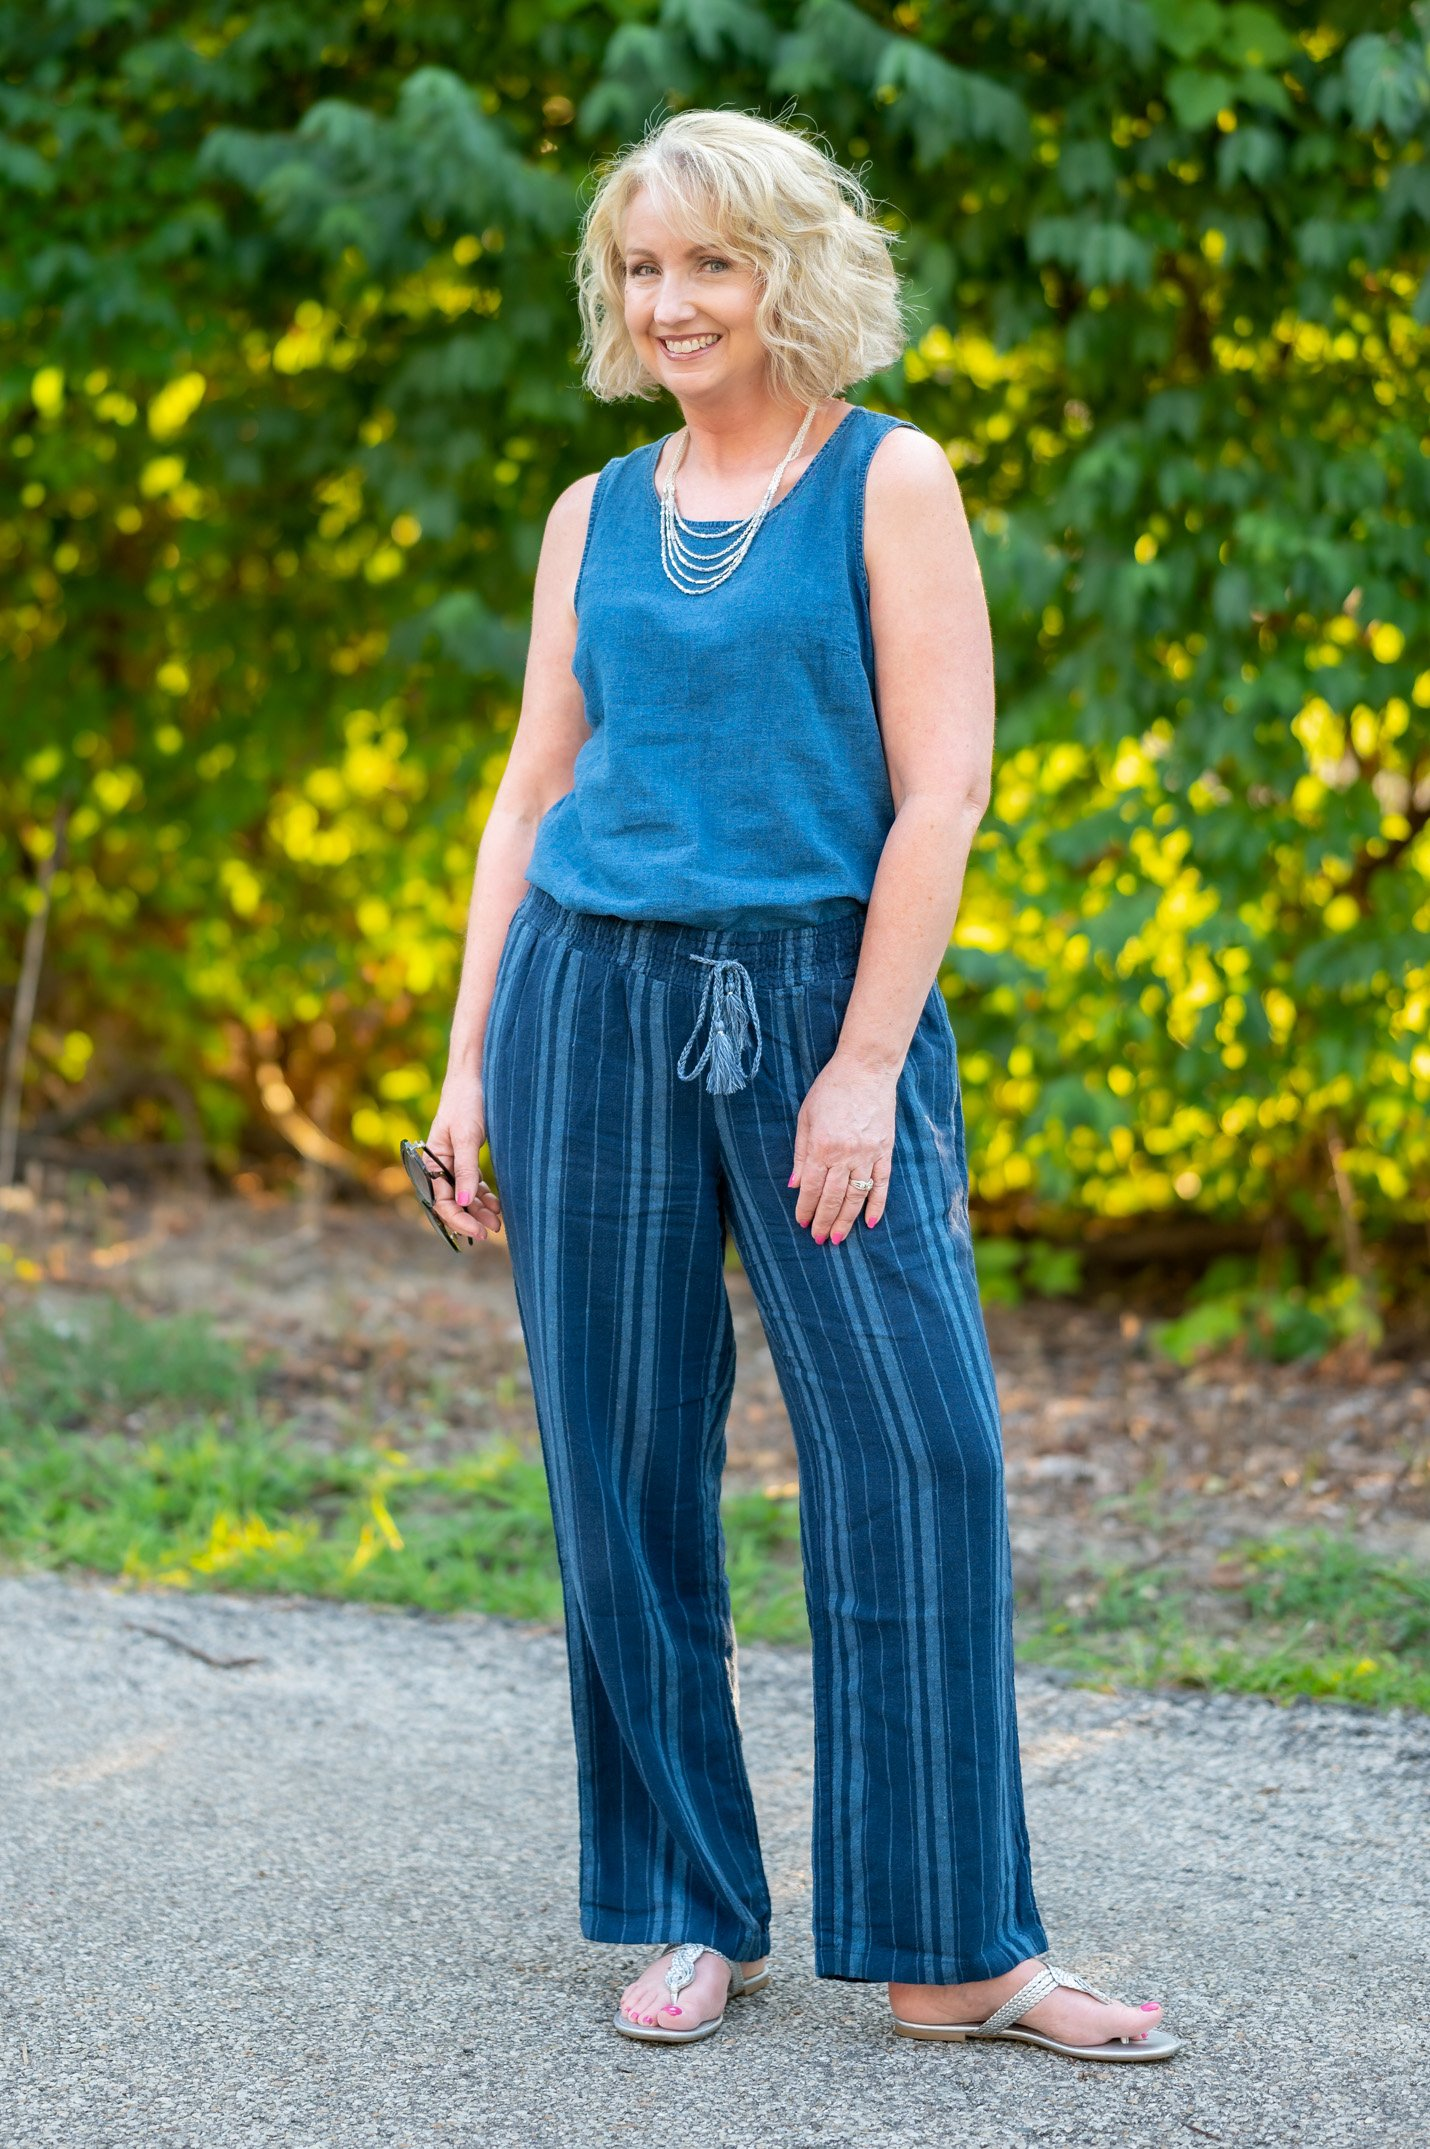 Wearing the Summertime Blues